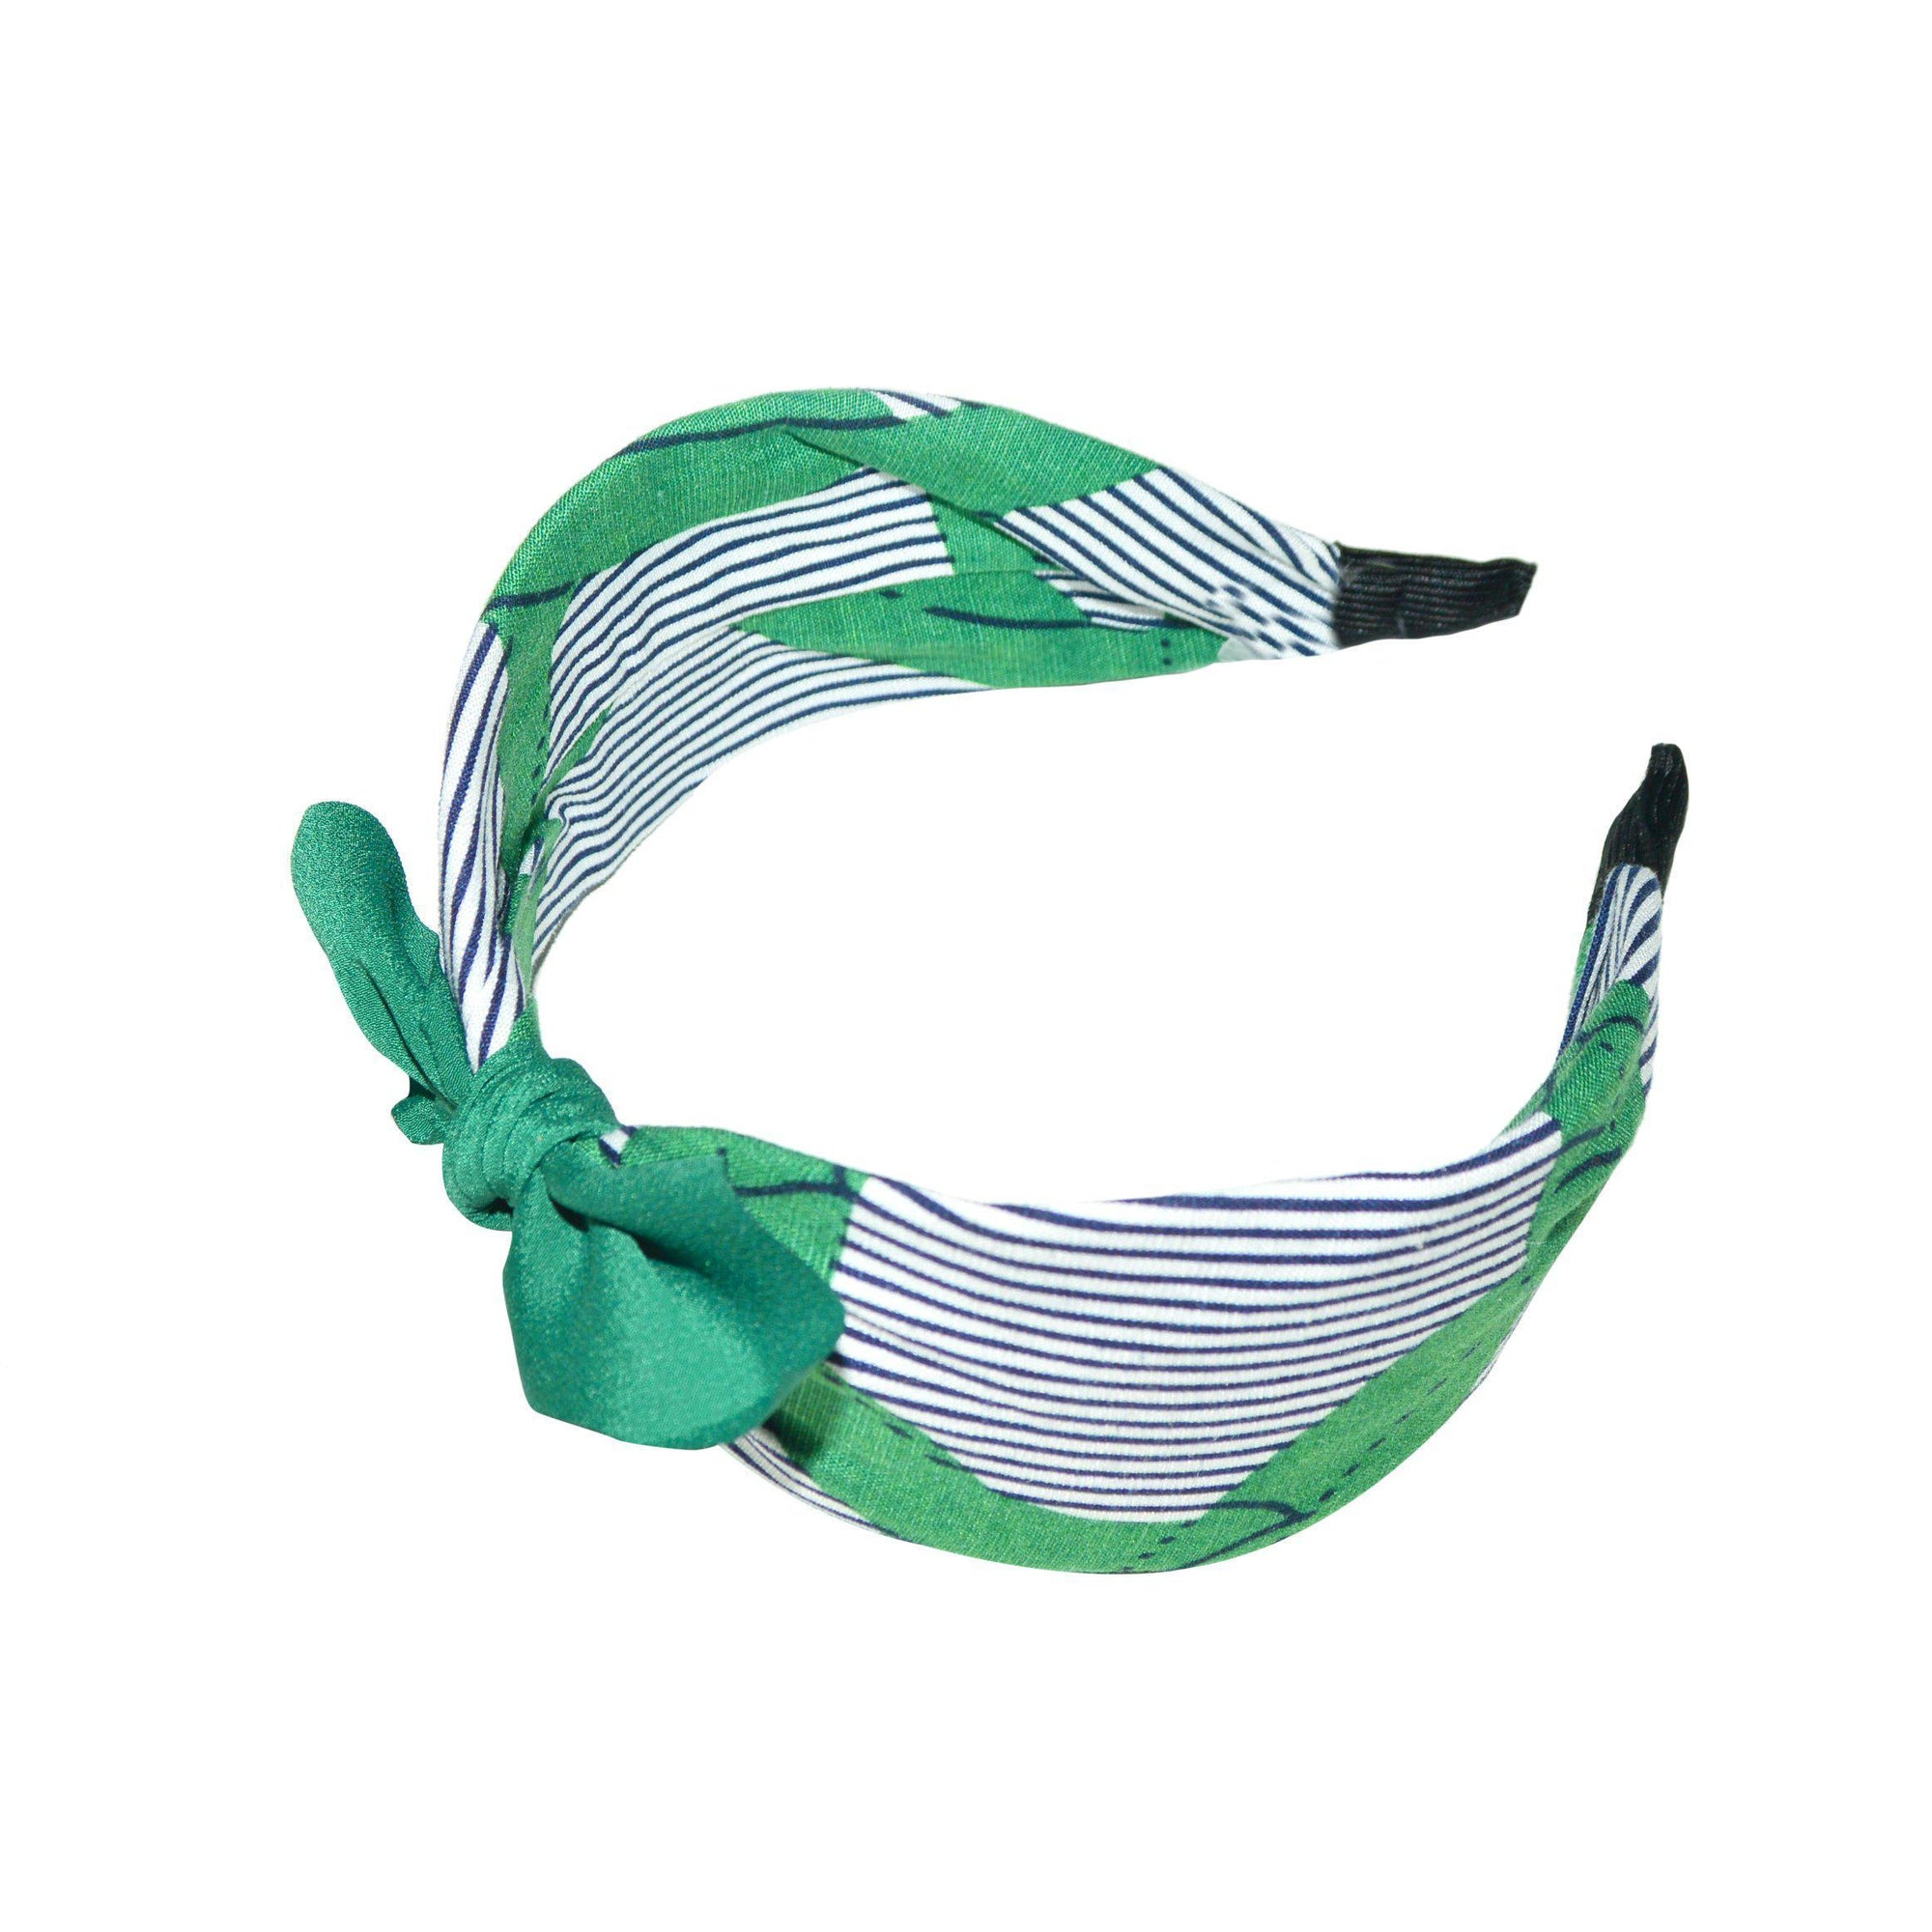 Handmade Wave Stripe Headband-Headbands-Tegen Accessories-Green-Tegen Accessories